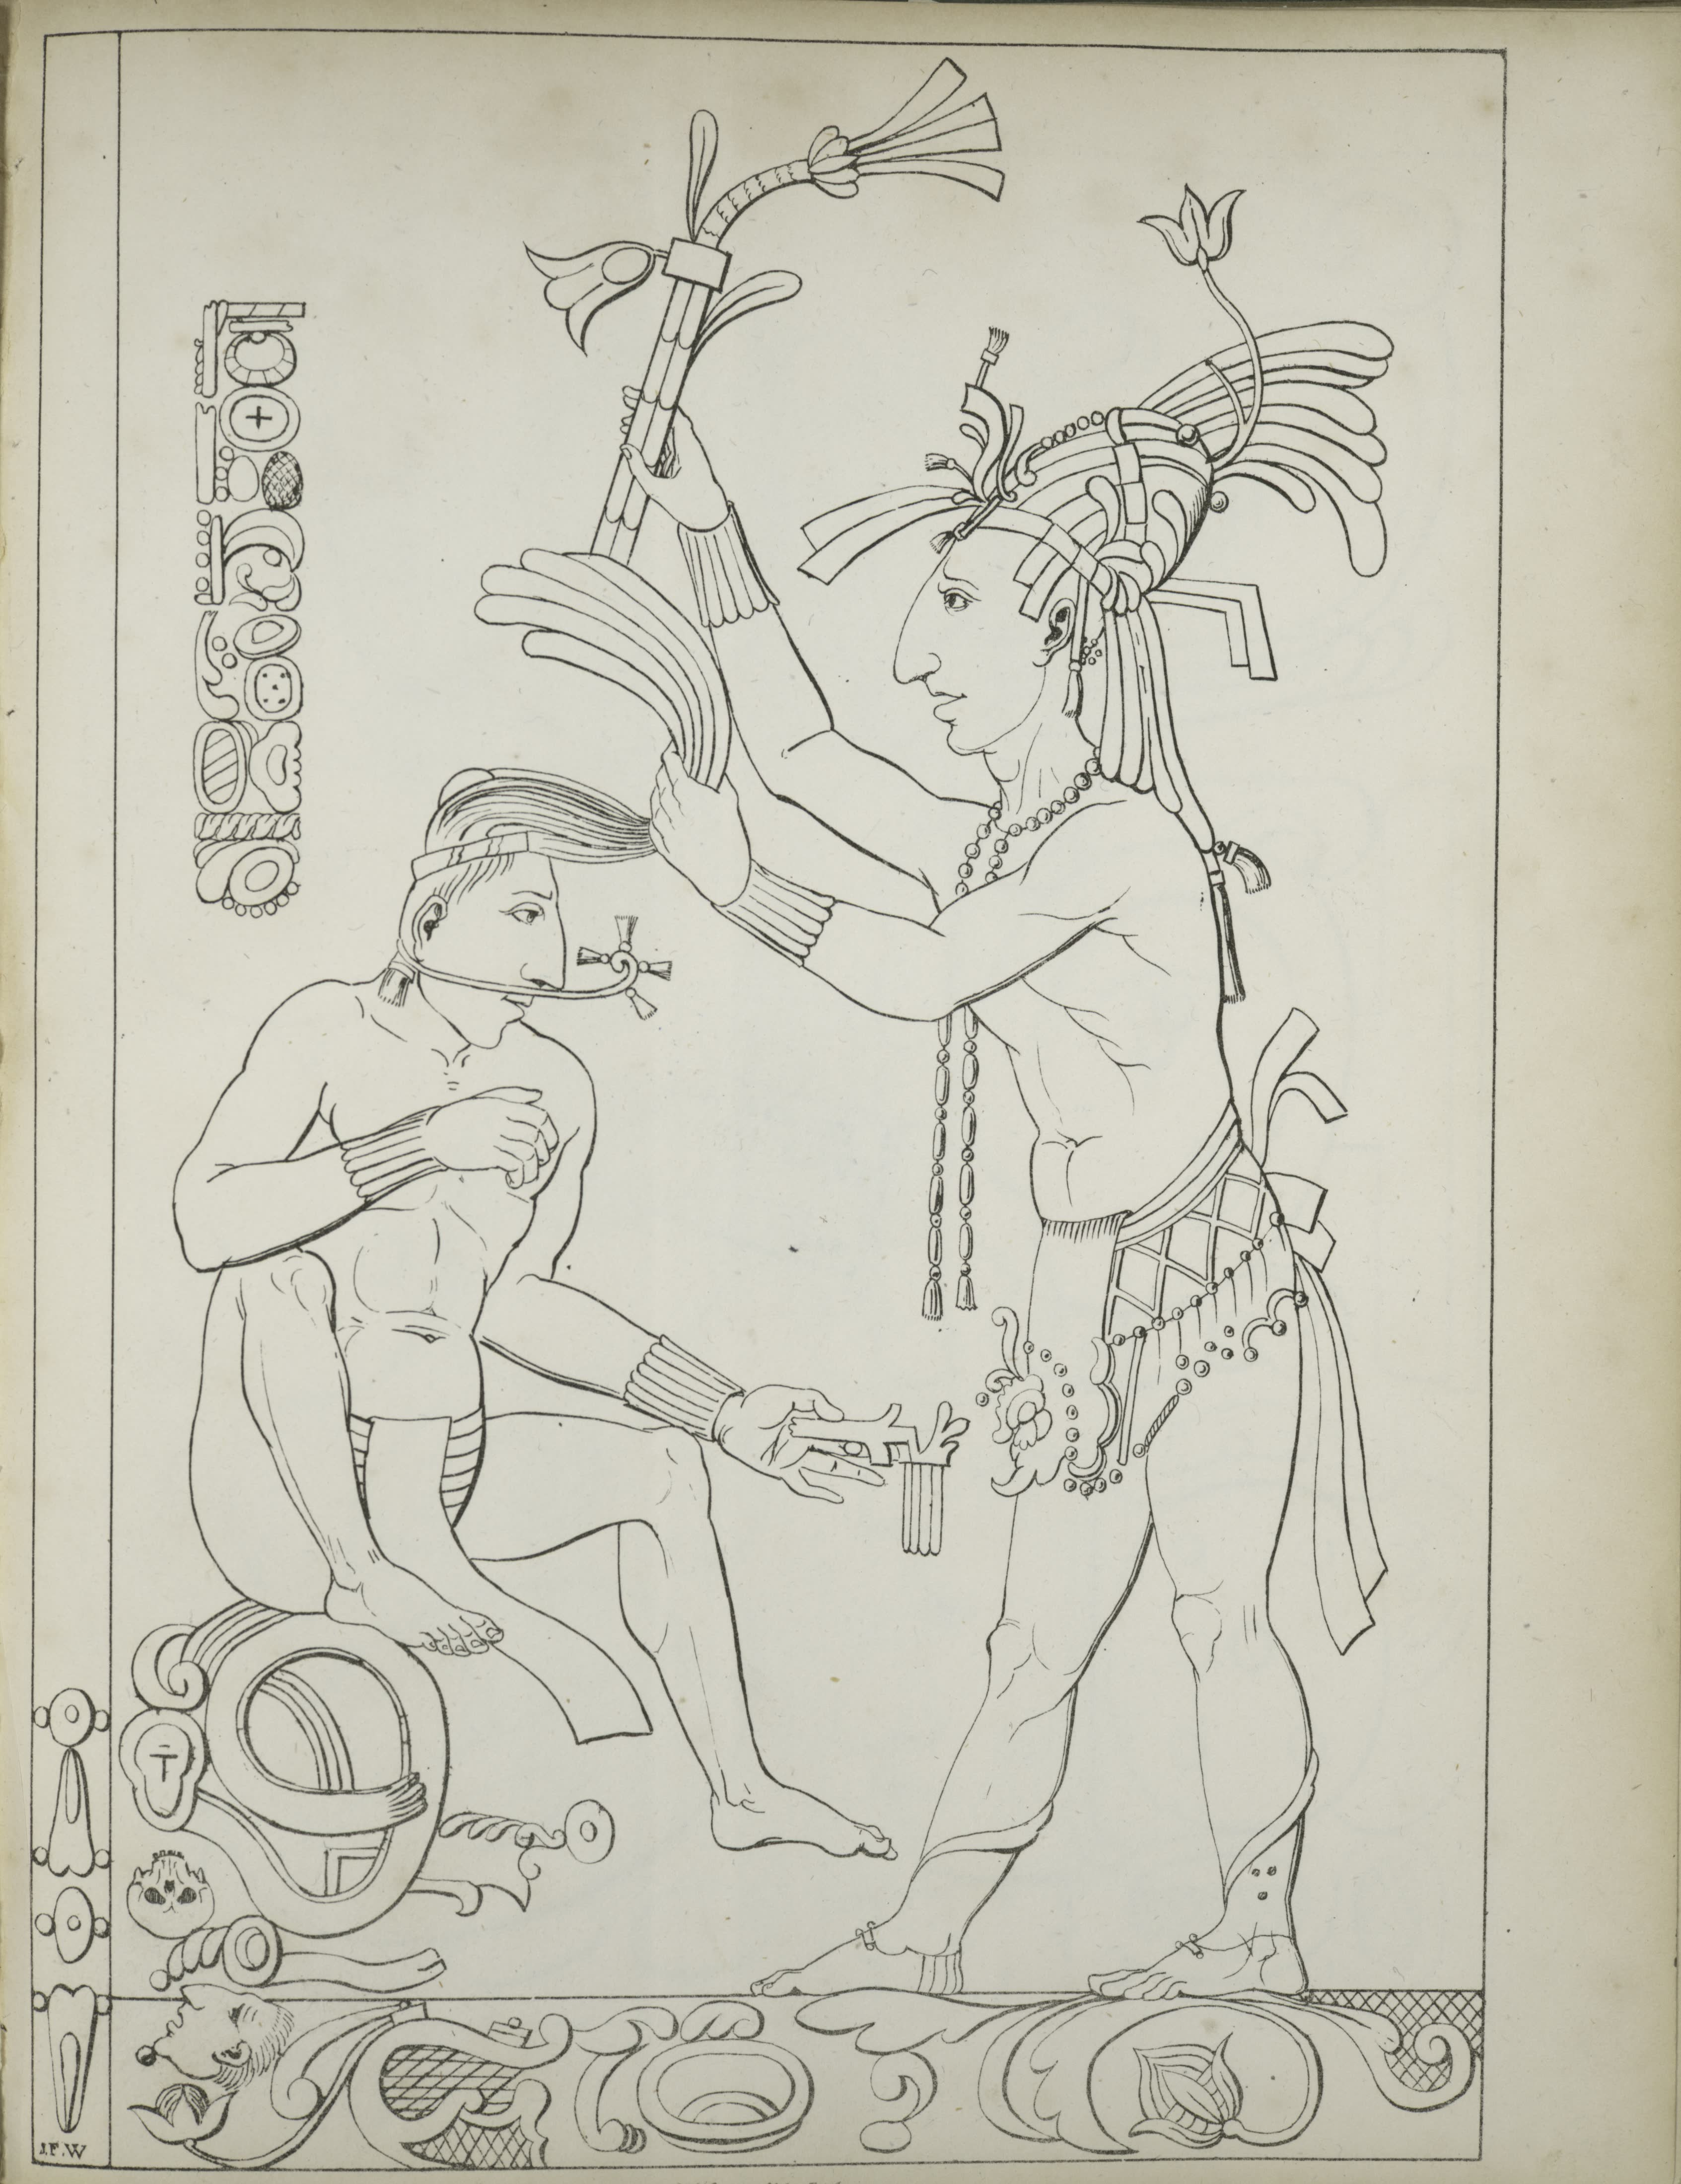 Description of the Ruins of an Ancient City - Two figures, one seated and one standing, with tools and decorative elements (1822)